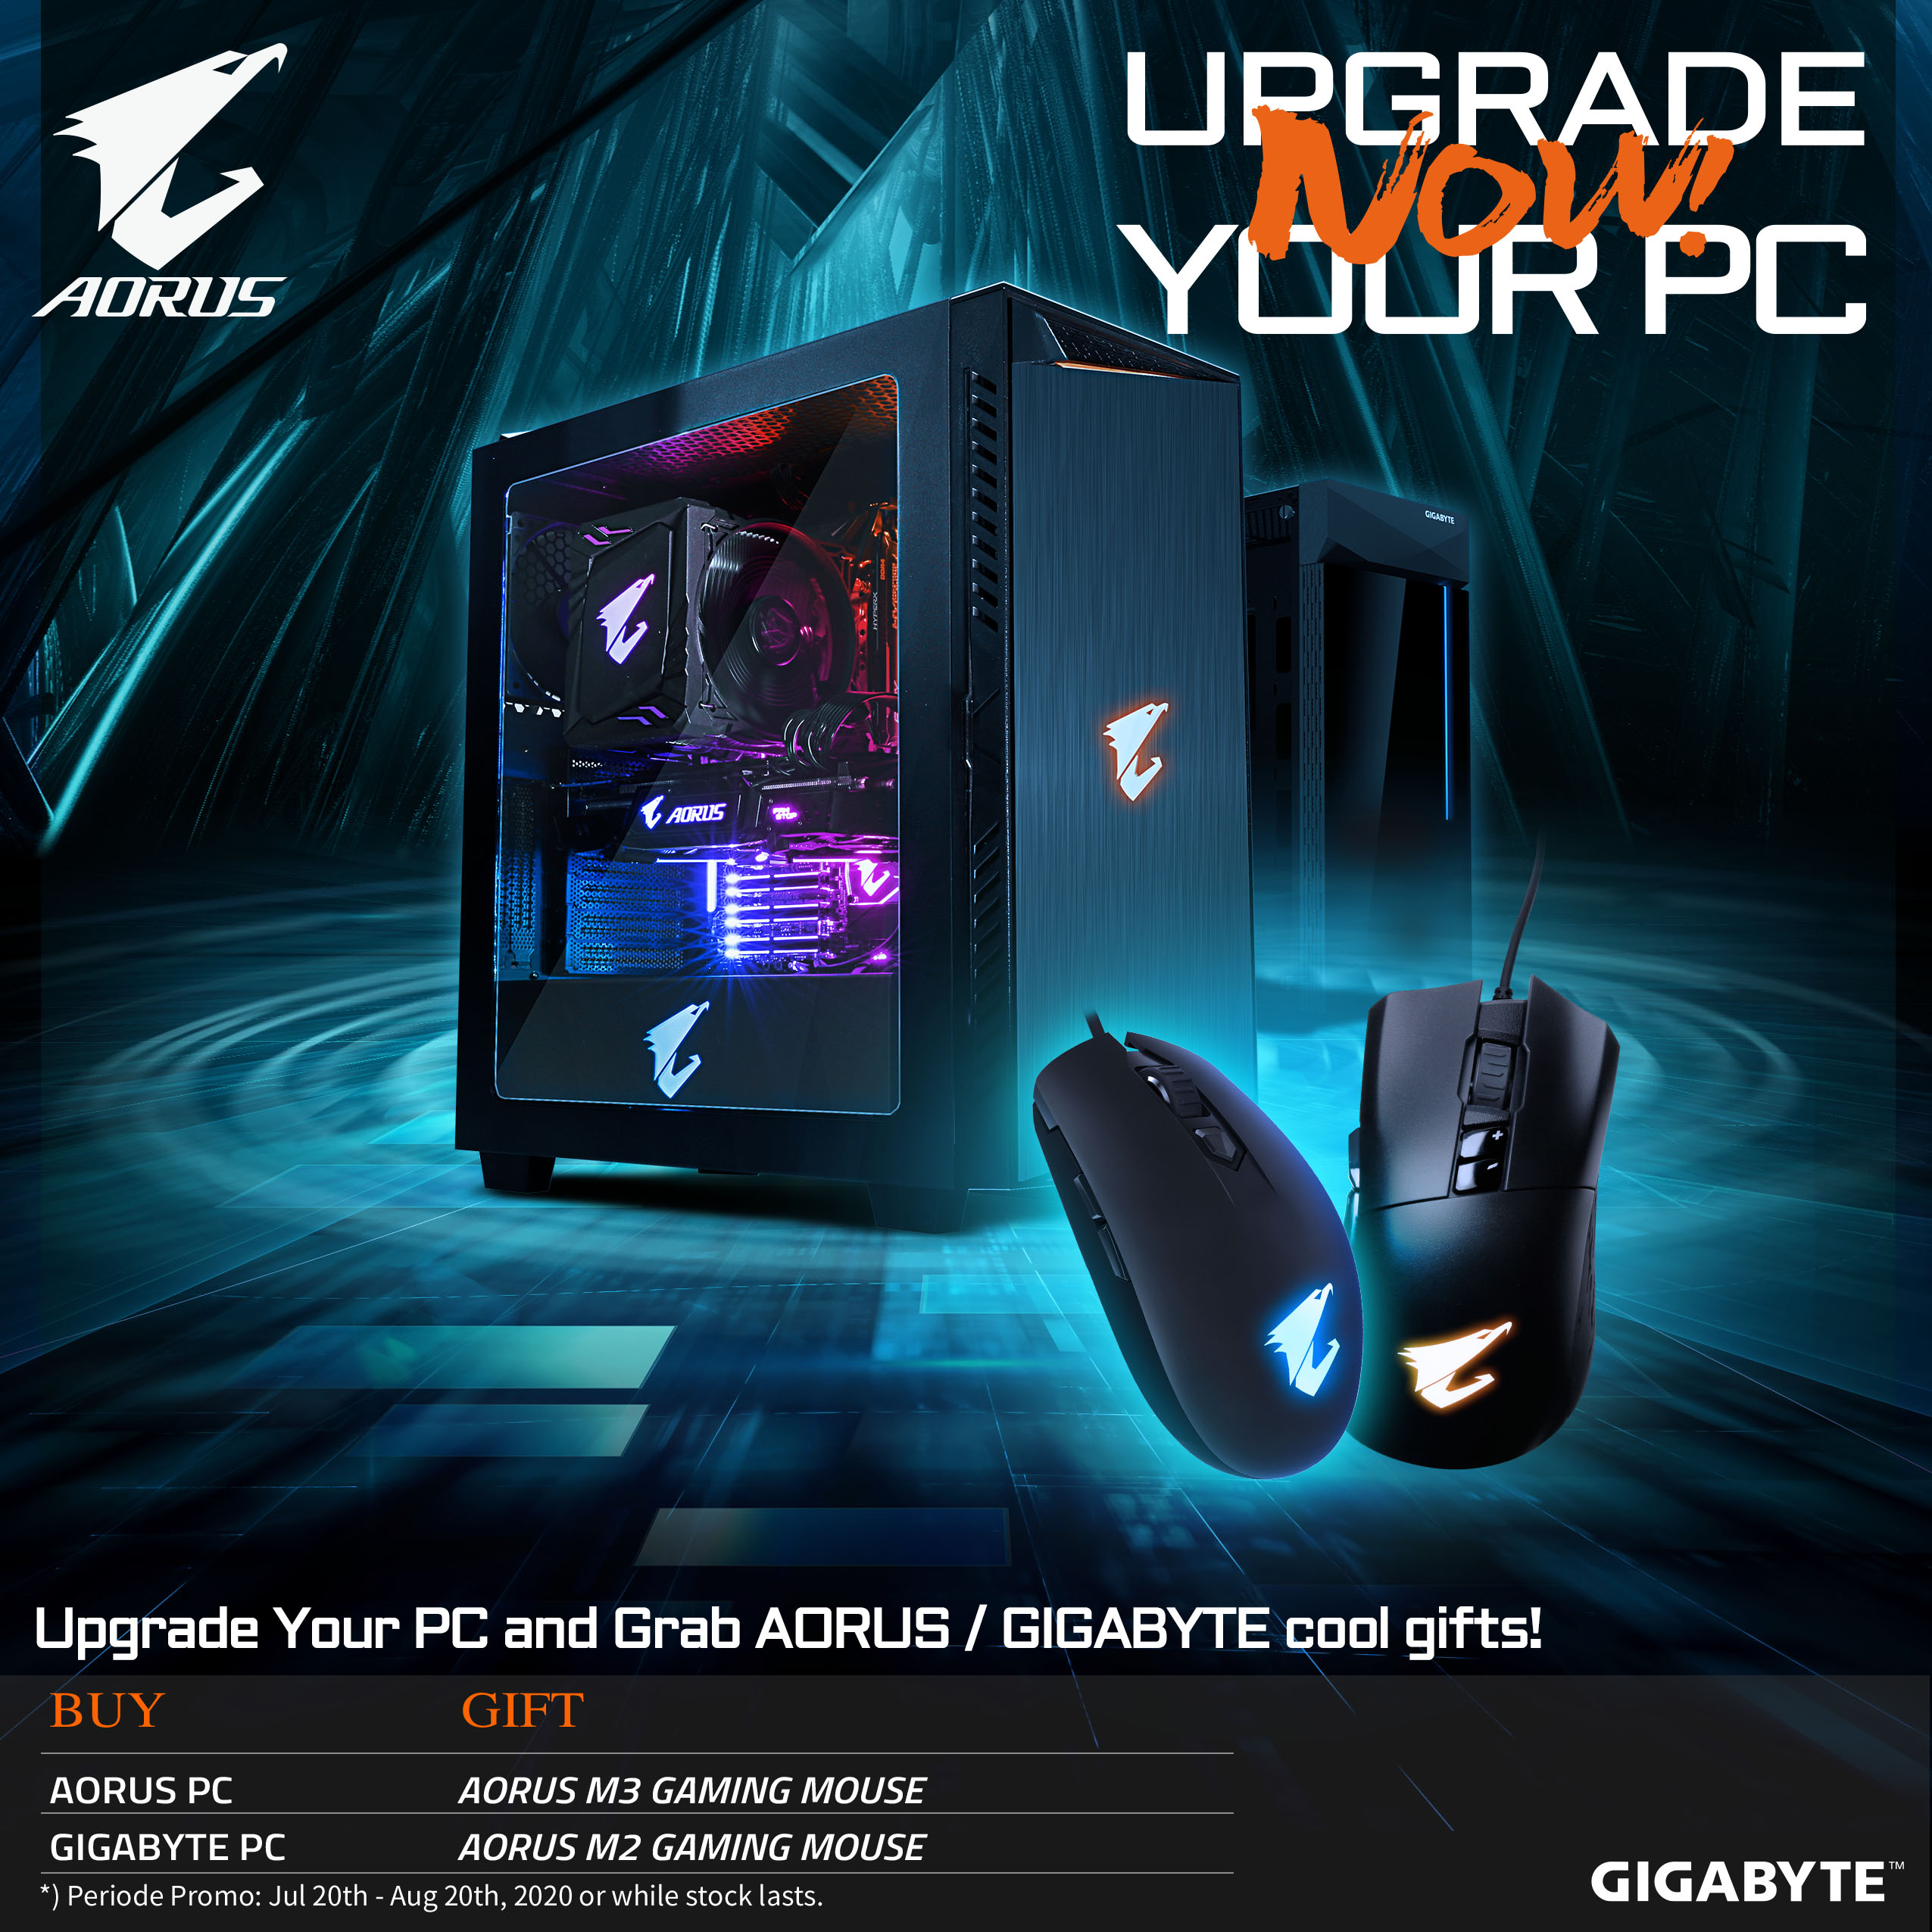 [MY] UPGRADE YOUR PC NOW!!!